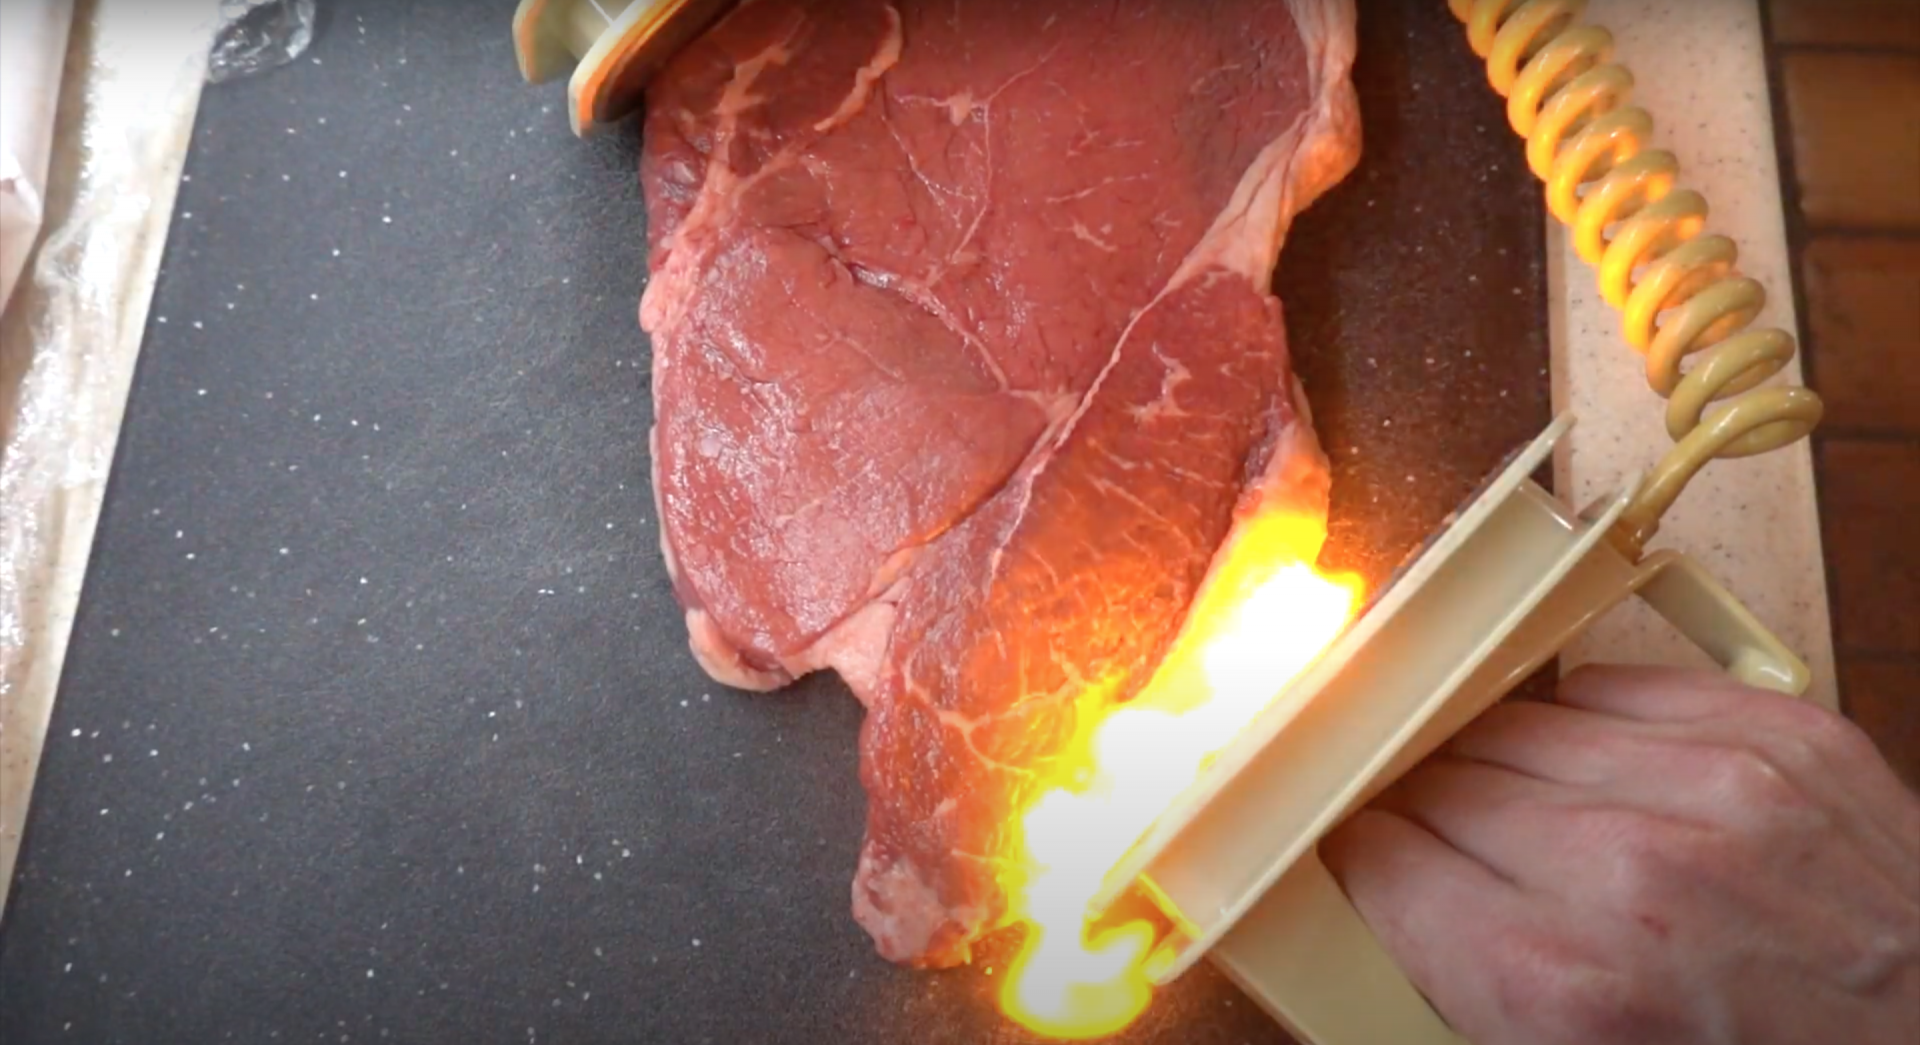 YouTuber performs experiments to see if defibrillating meats makes them taste better.